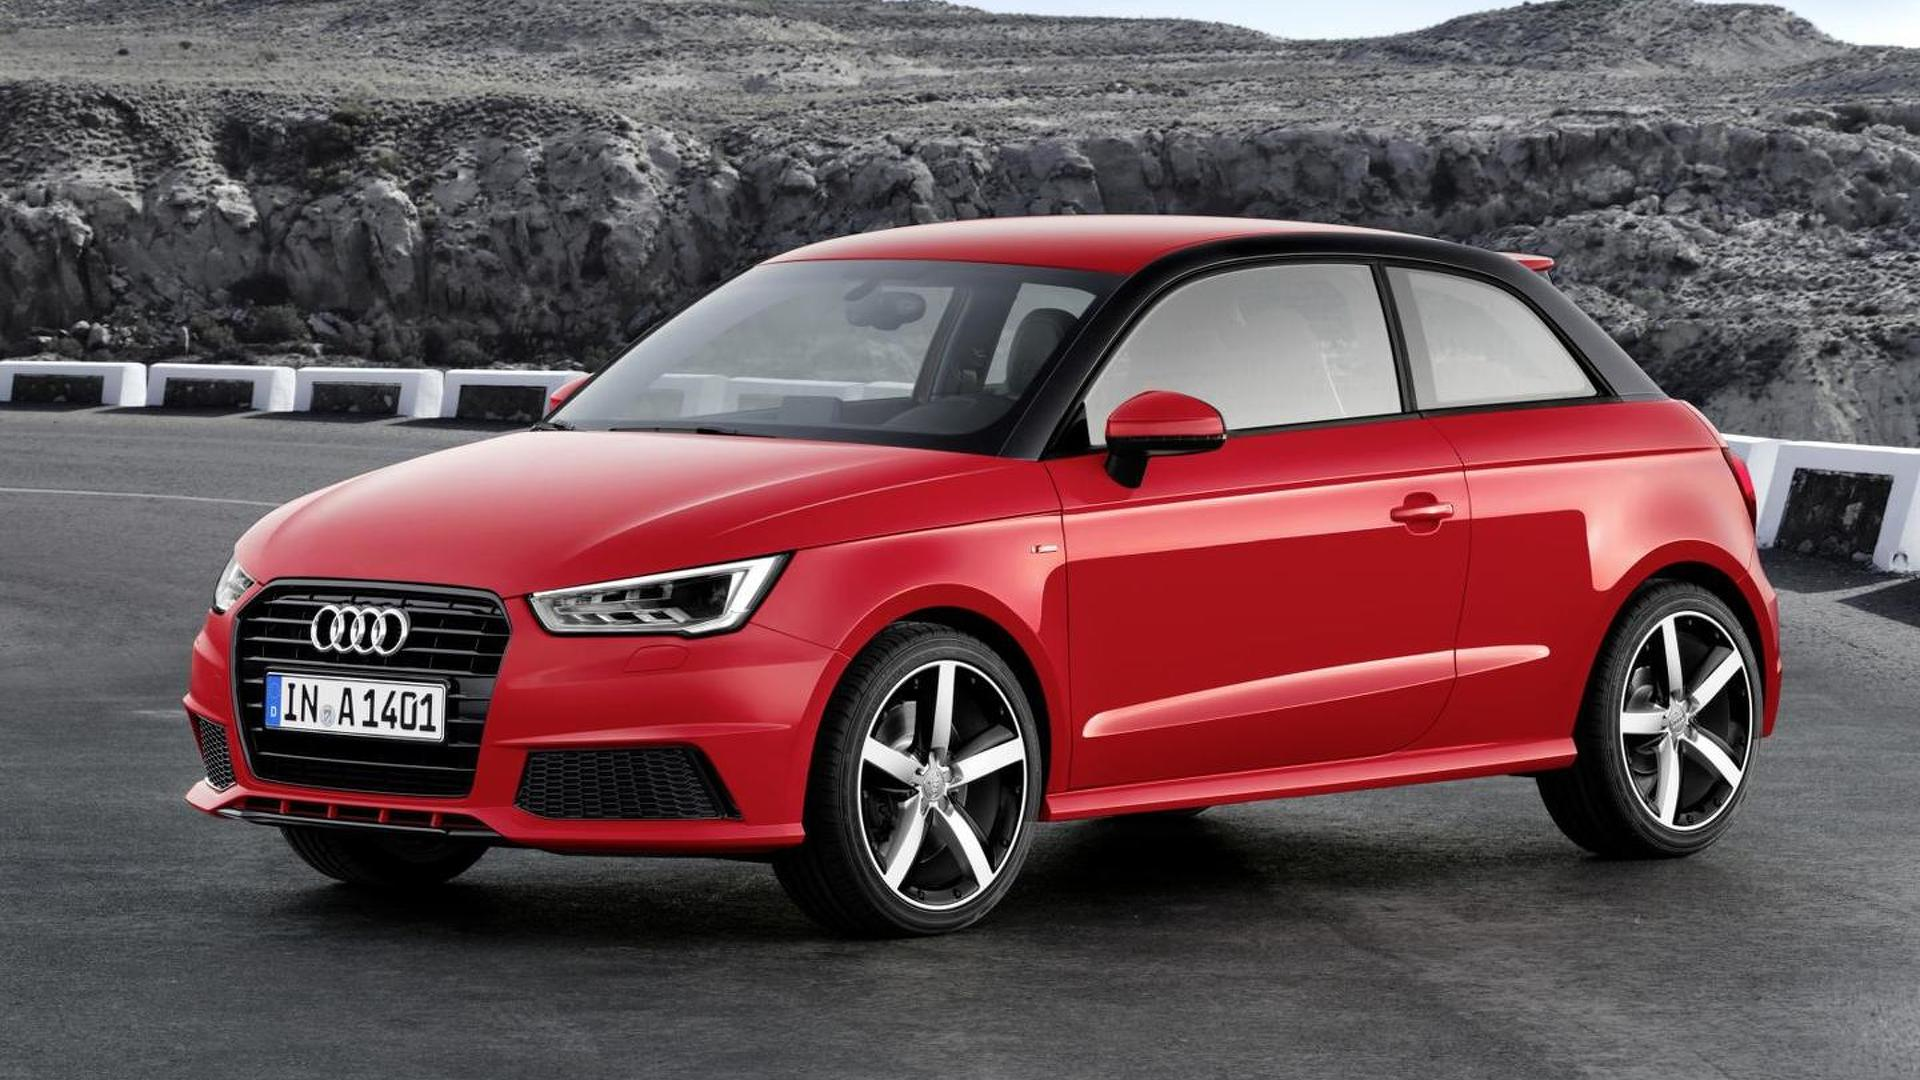 Audi could move A1 production to SEAT's factory in Spain